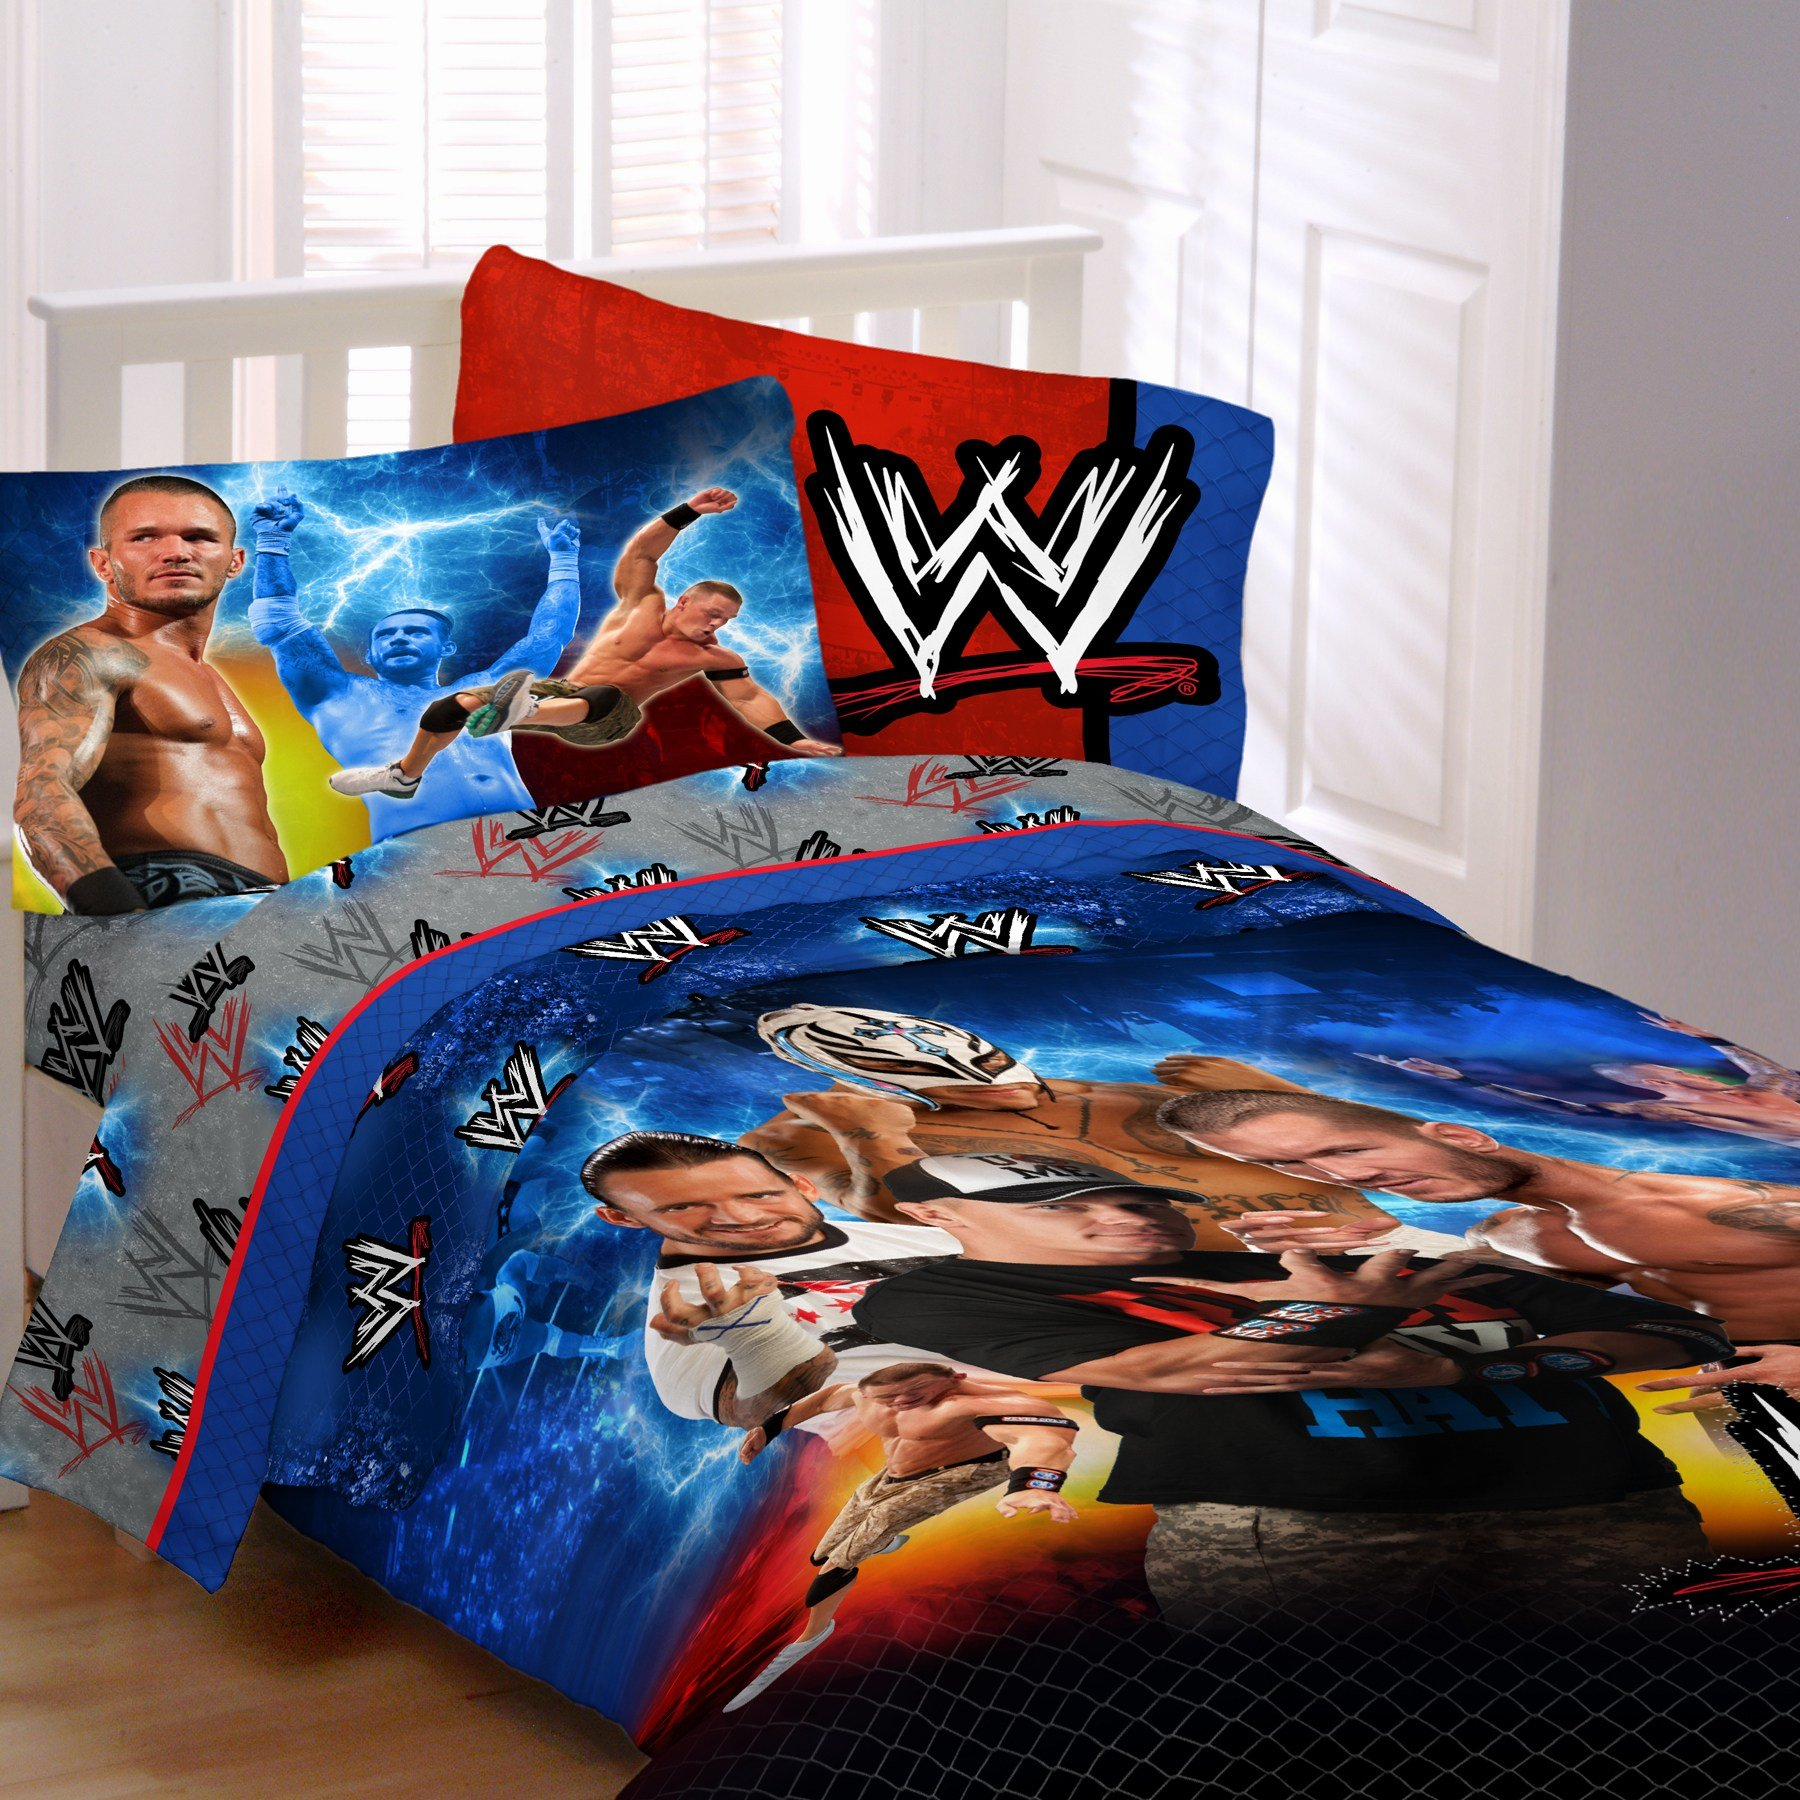 Best Wwe Champion Comforter Home Bed Bath Bedding With Pictures